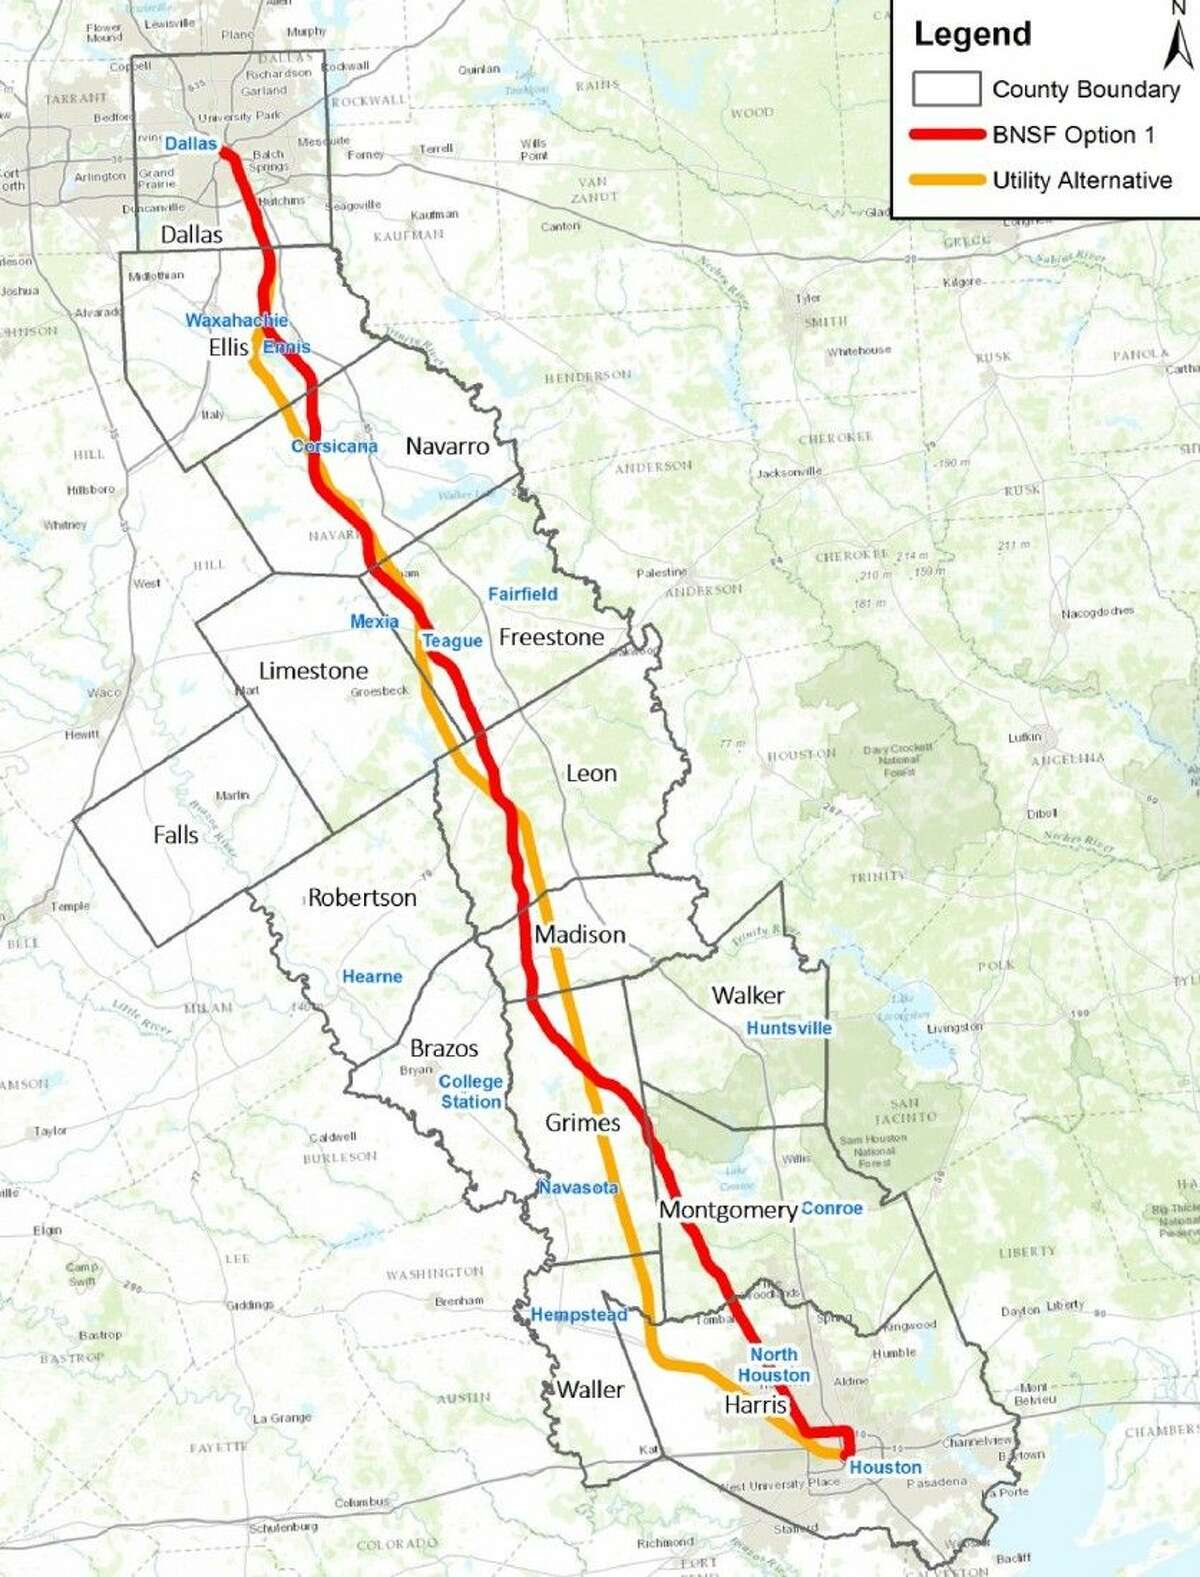 The proposed routes for the Texas Central High-Speed Railway. The orange utility alignment is the preferred route by the company.